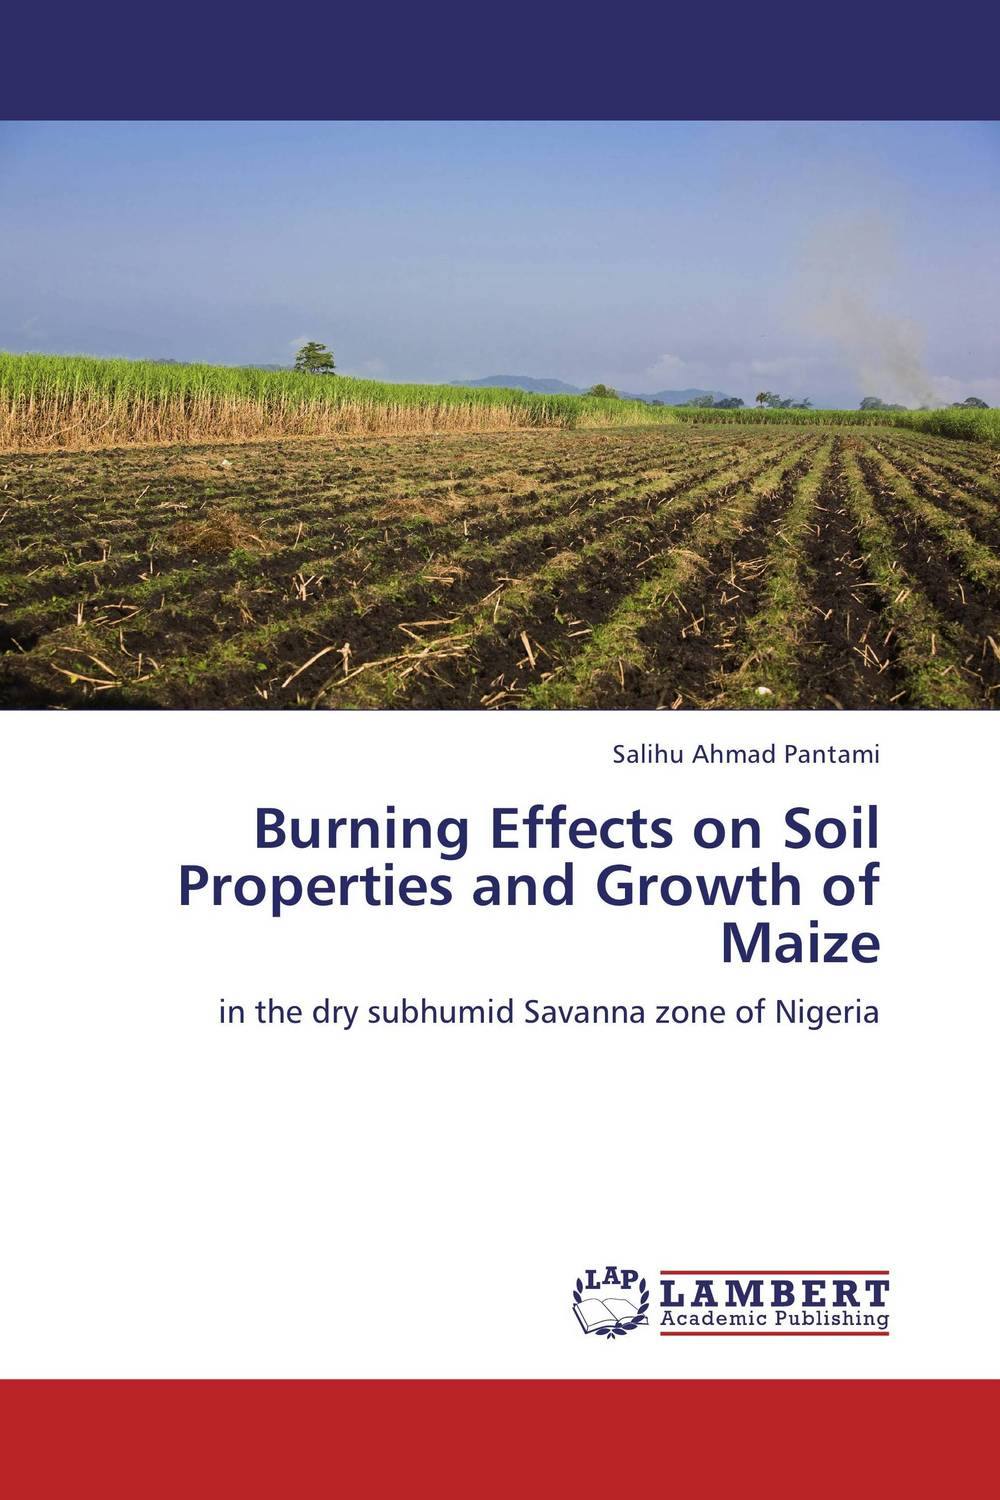 Burning Effects on Soil Properties and Growth of Maize